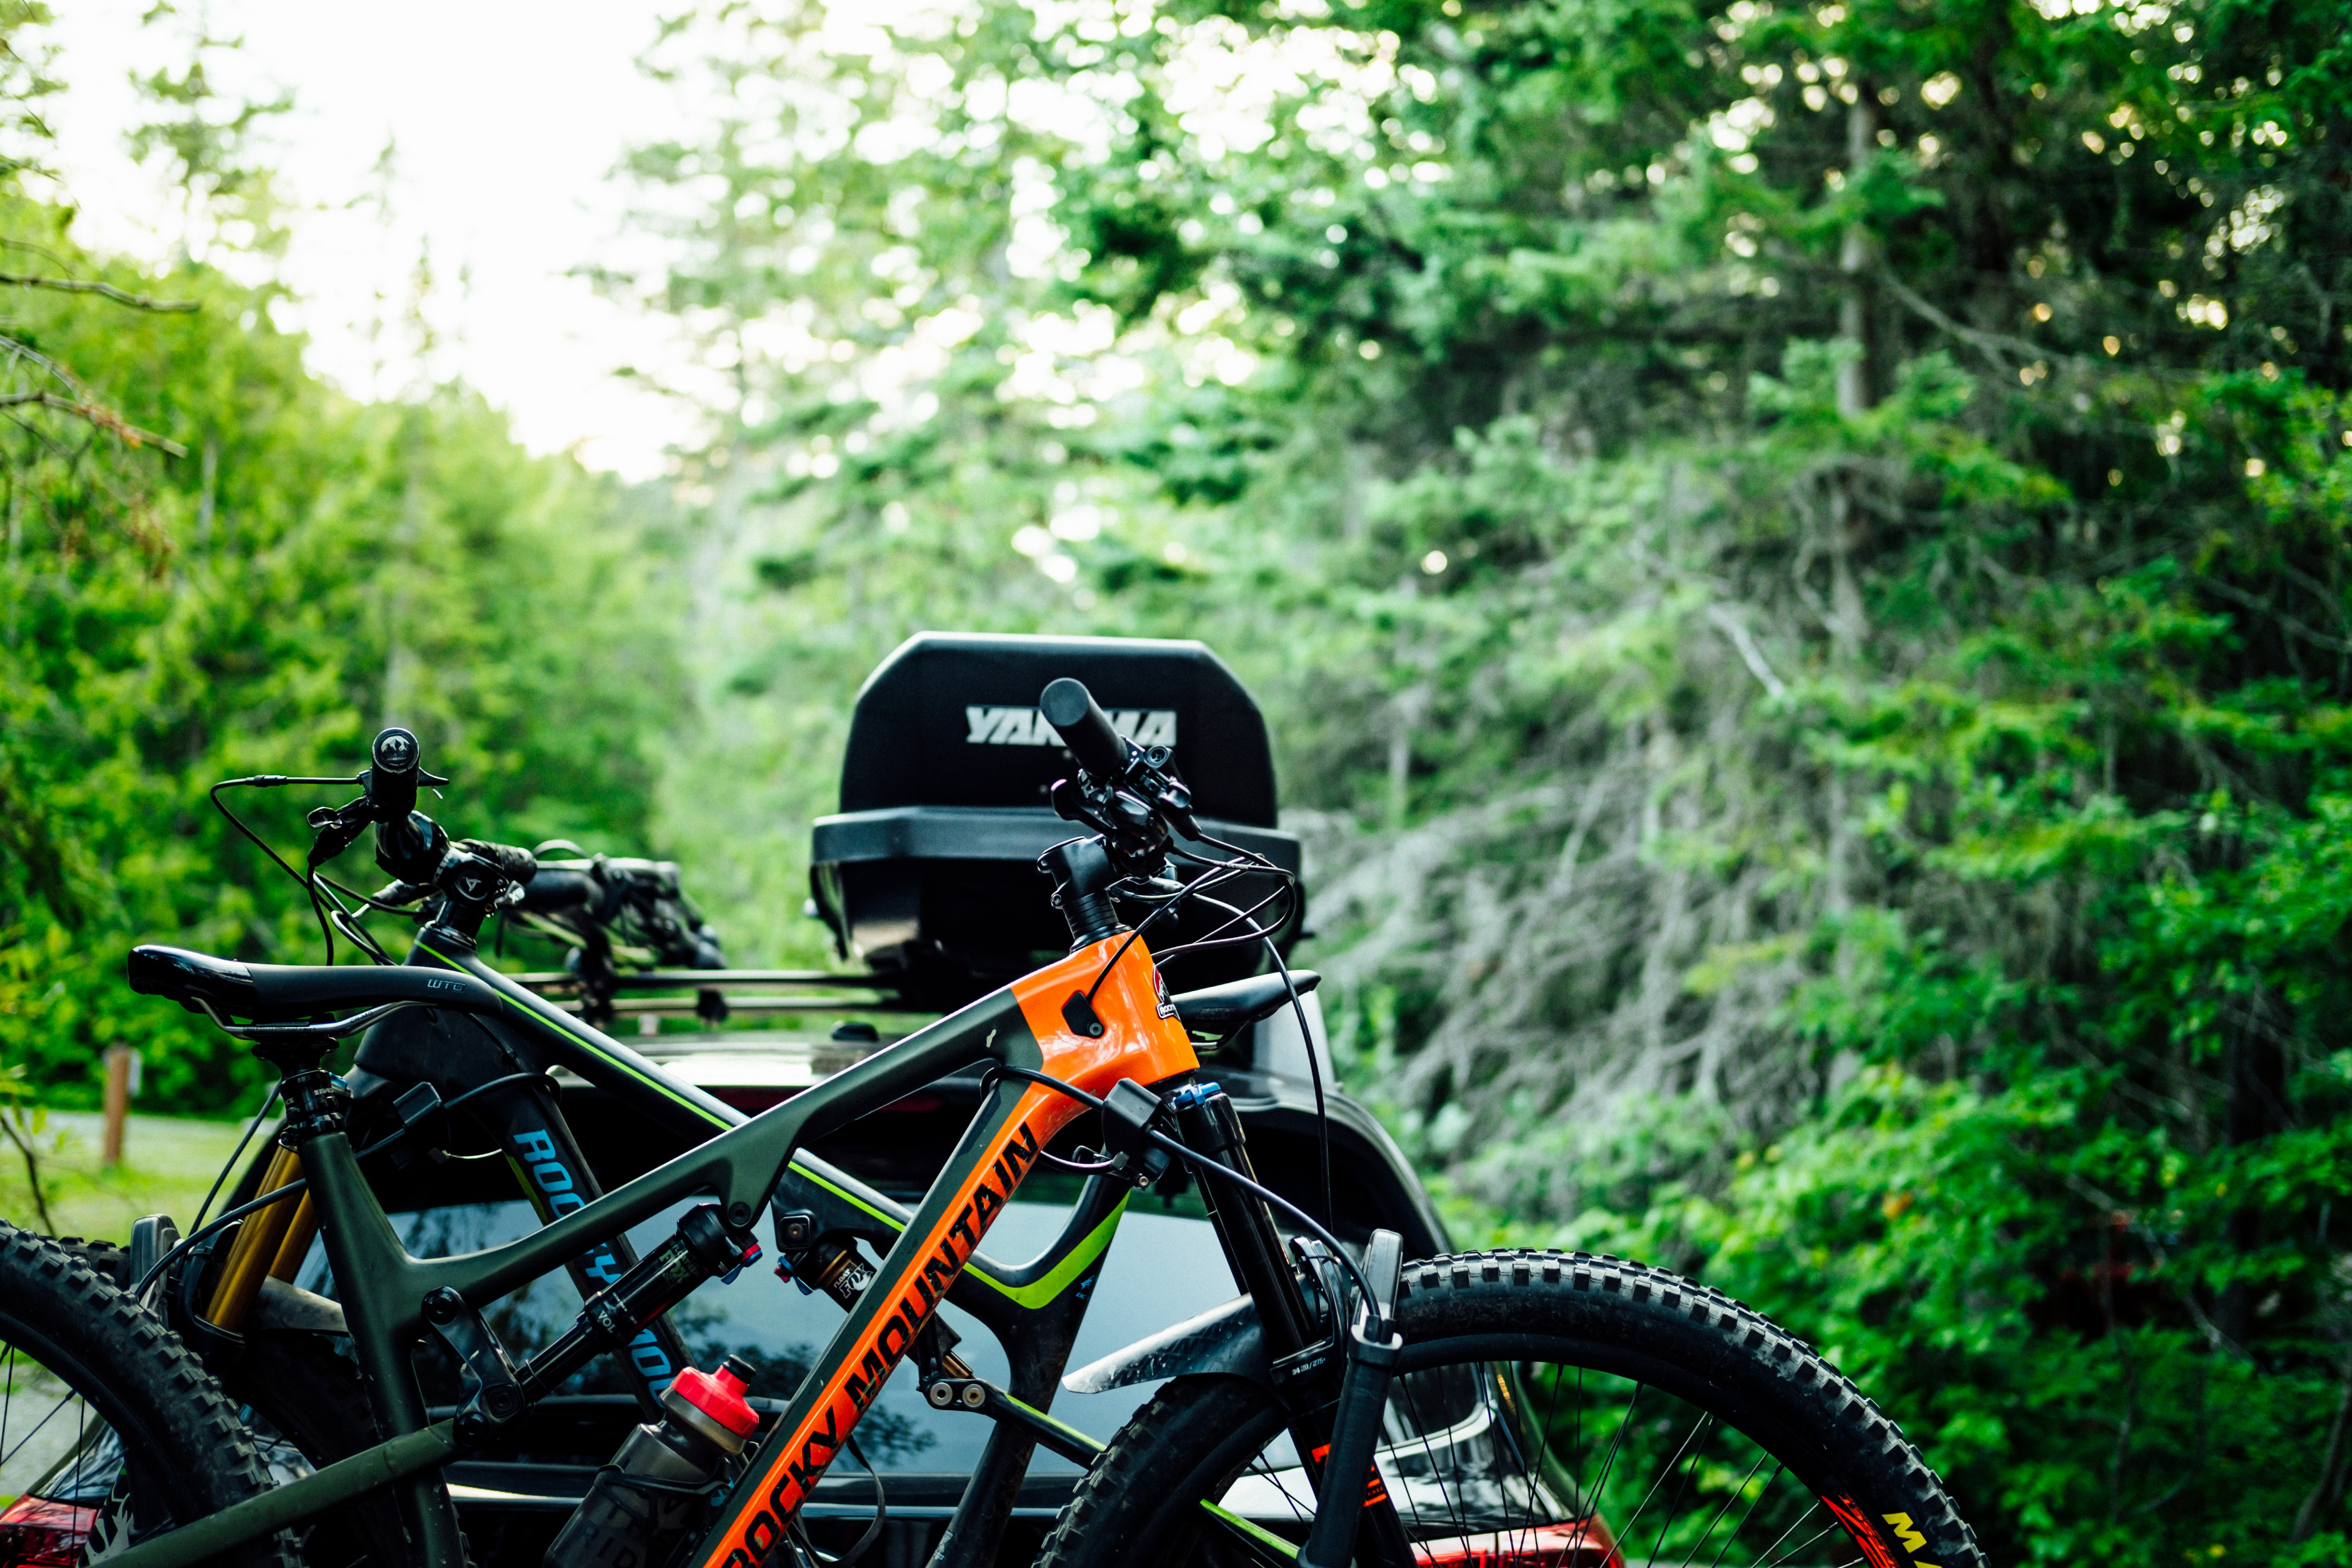 If you follow local rules and proper social distancing precautions, you can still have a great mountain bike road trip this summer. Photo by Tim Foster.